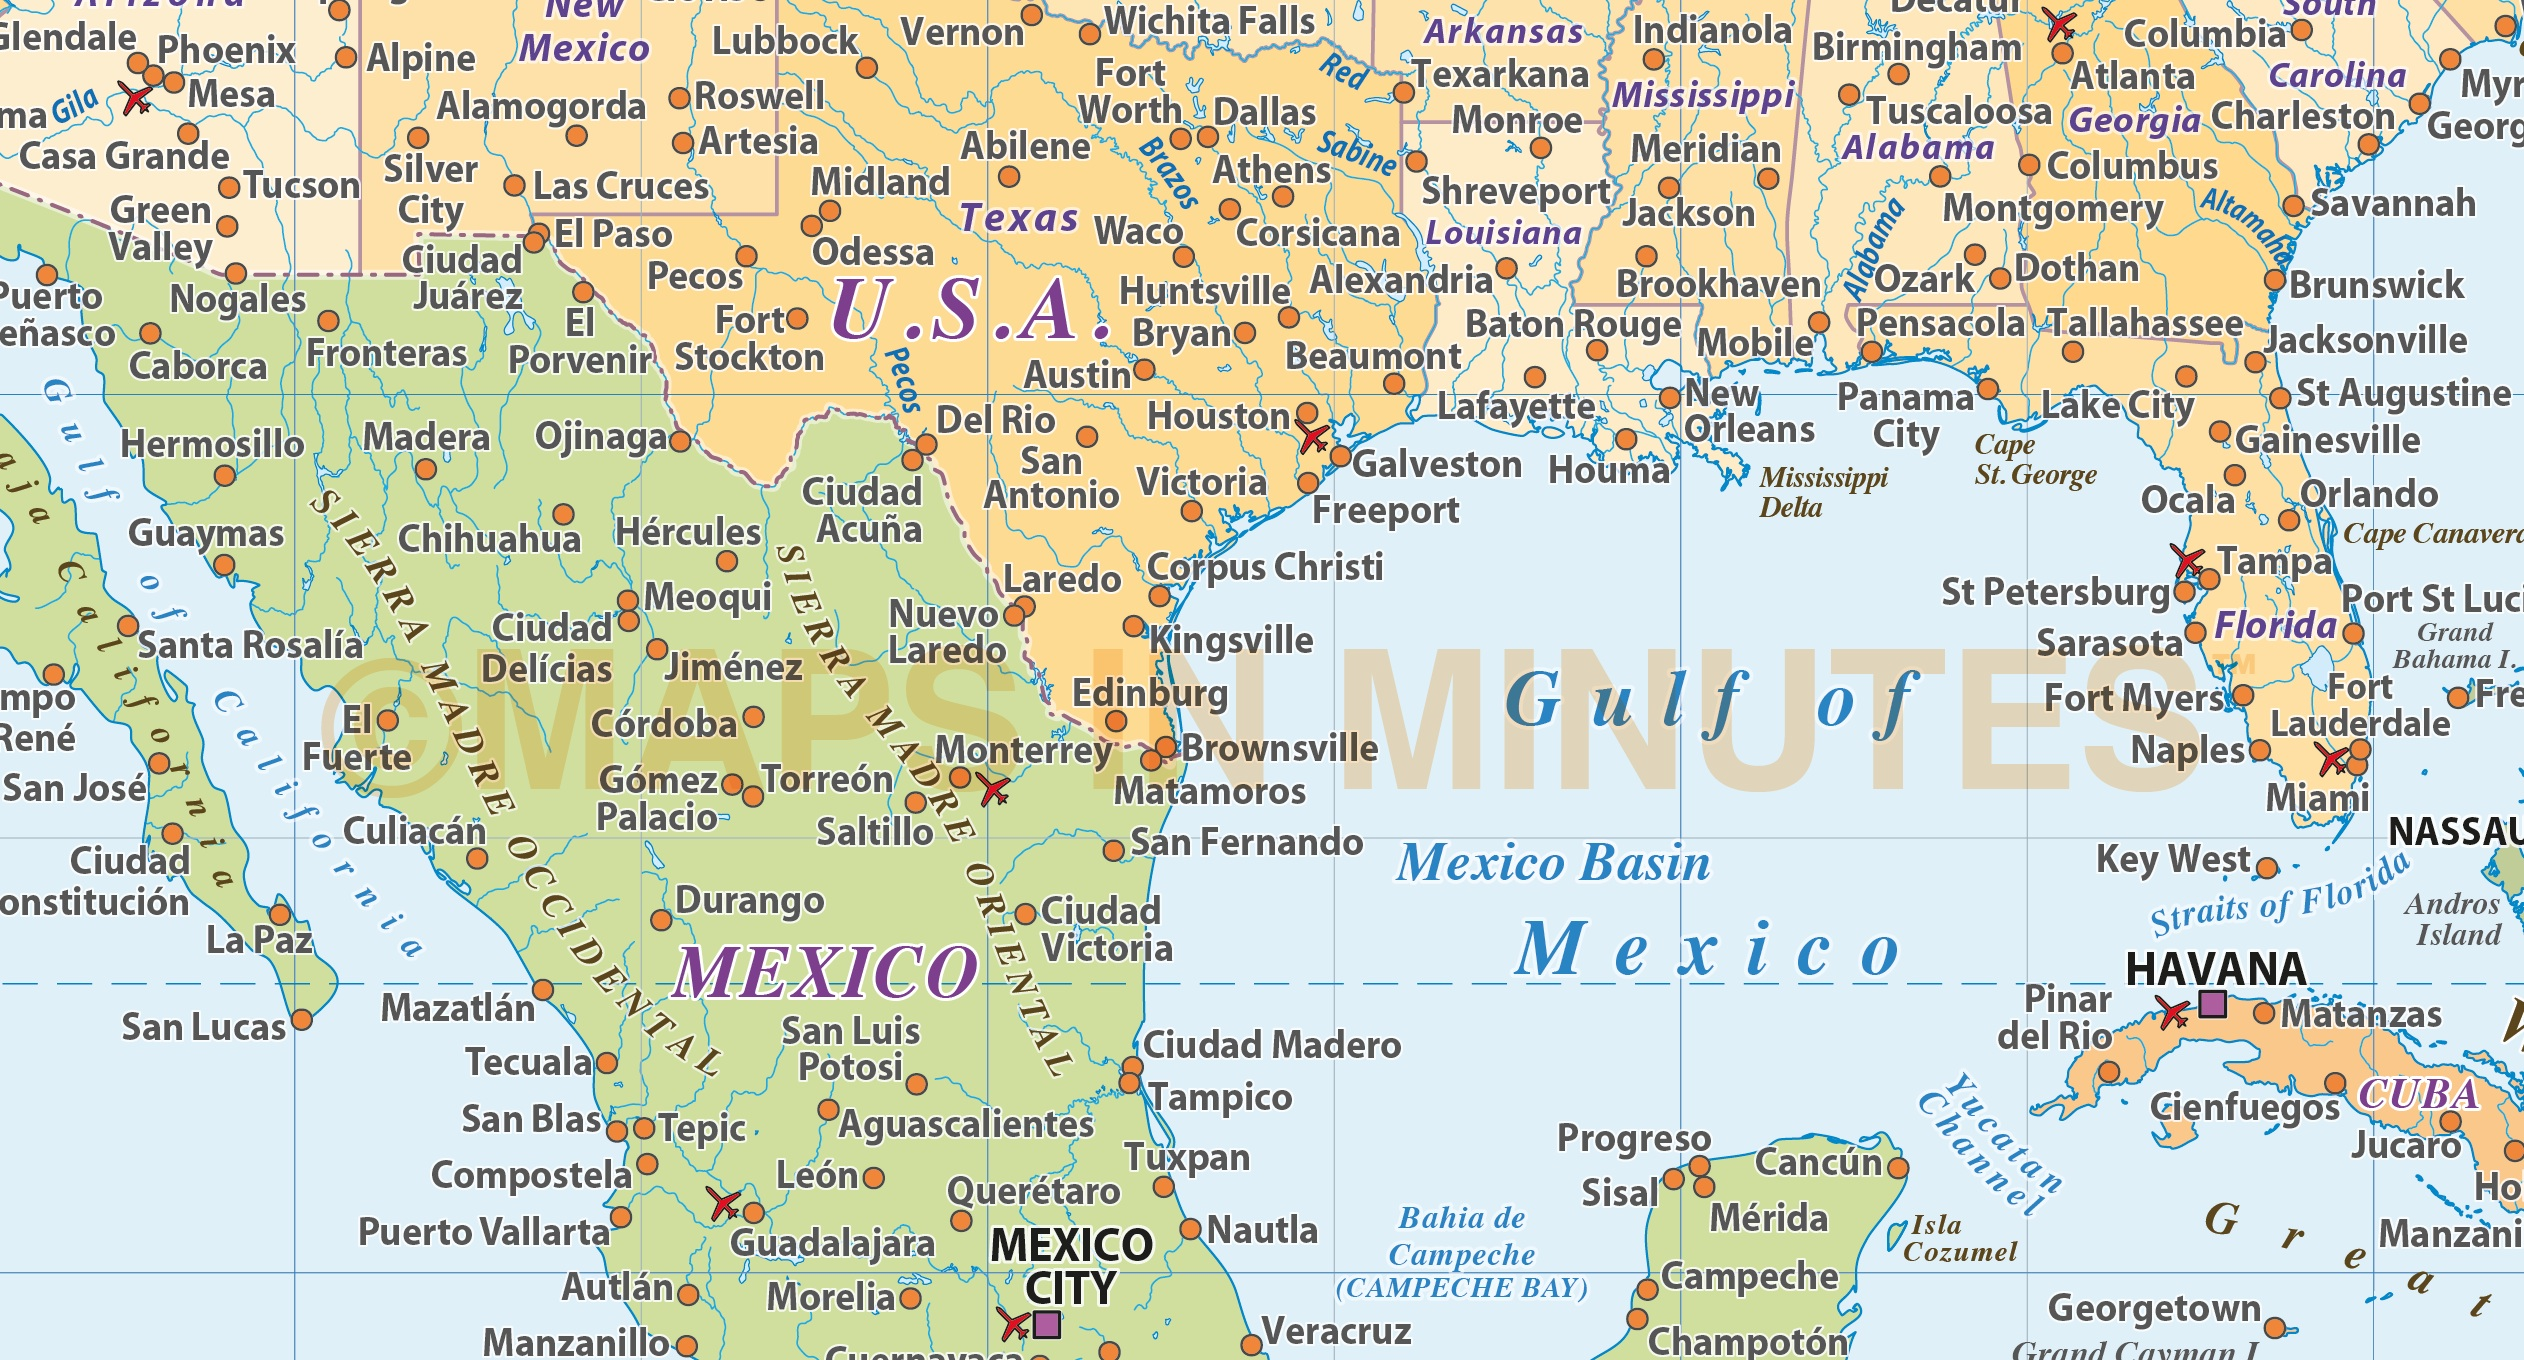 Digital Vector Central America & Caribbean Political Map @10m Scale With Sea Contours In